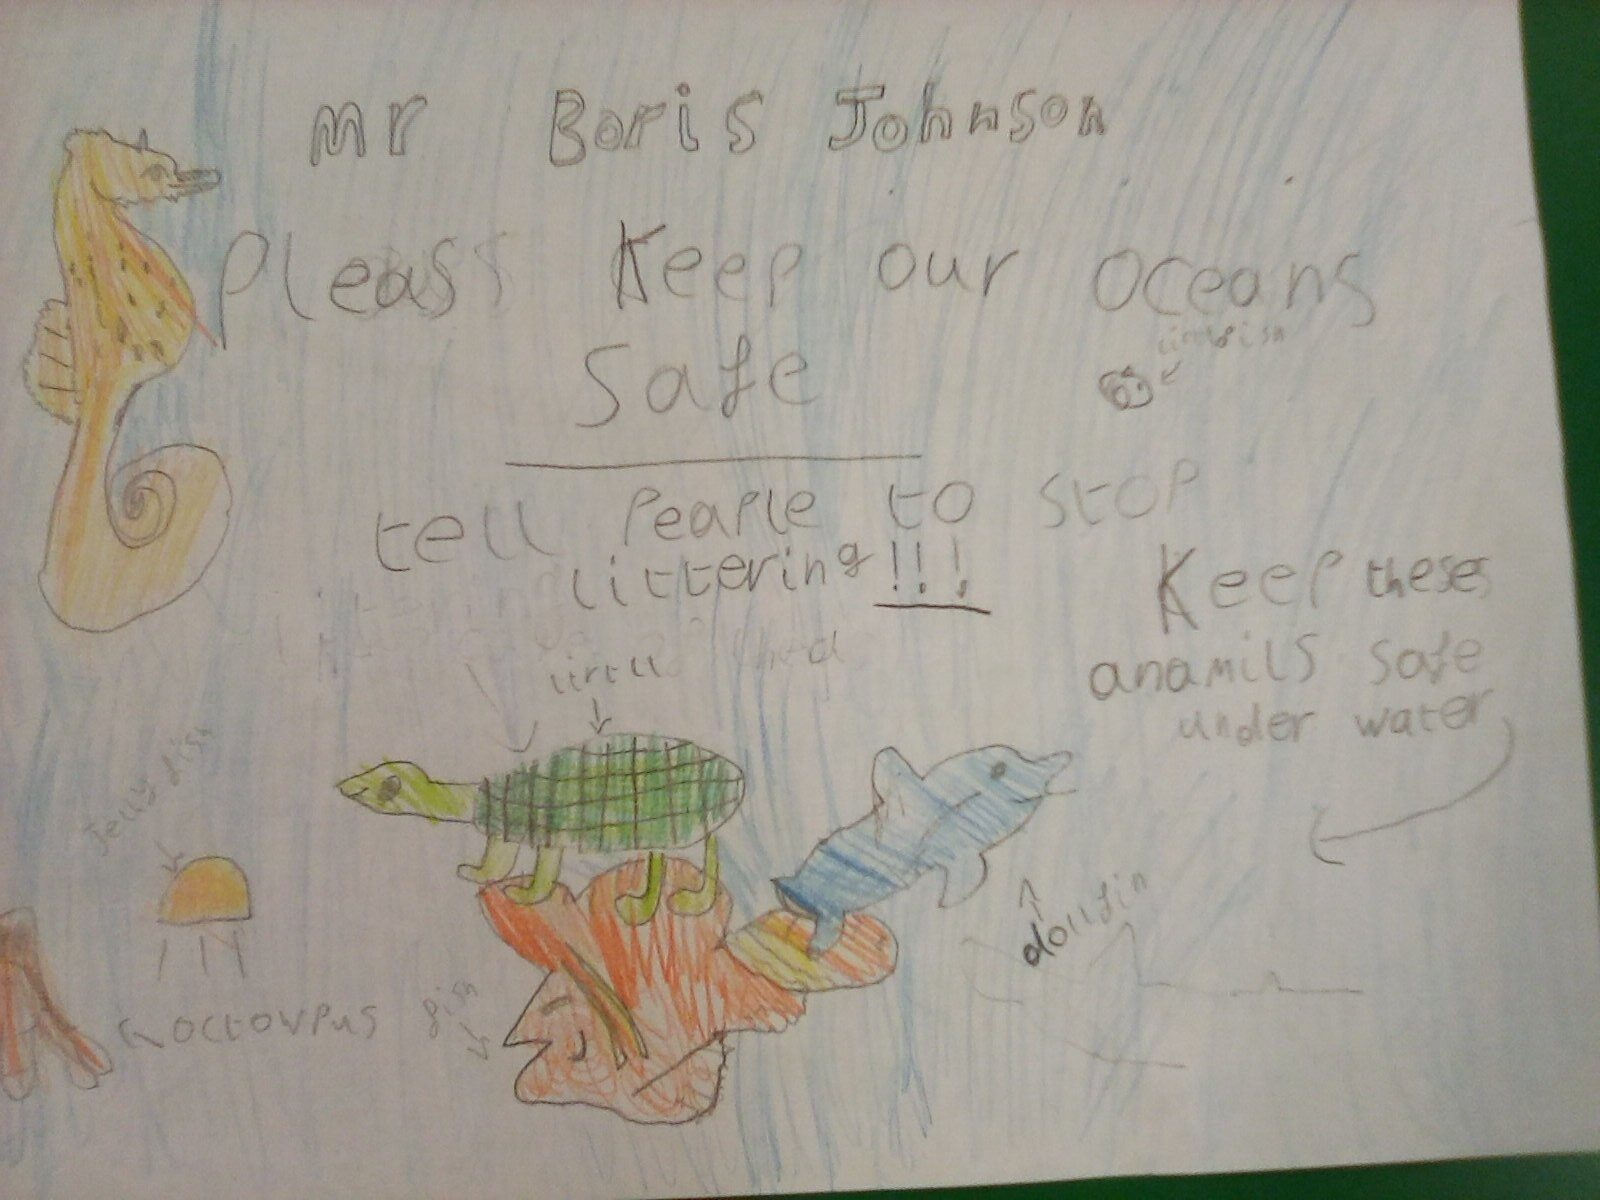 Poster drawn by a school pupil calling for better ocean protection. Features a seahorse, a turtle, and various fish.